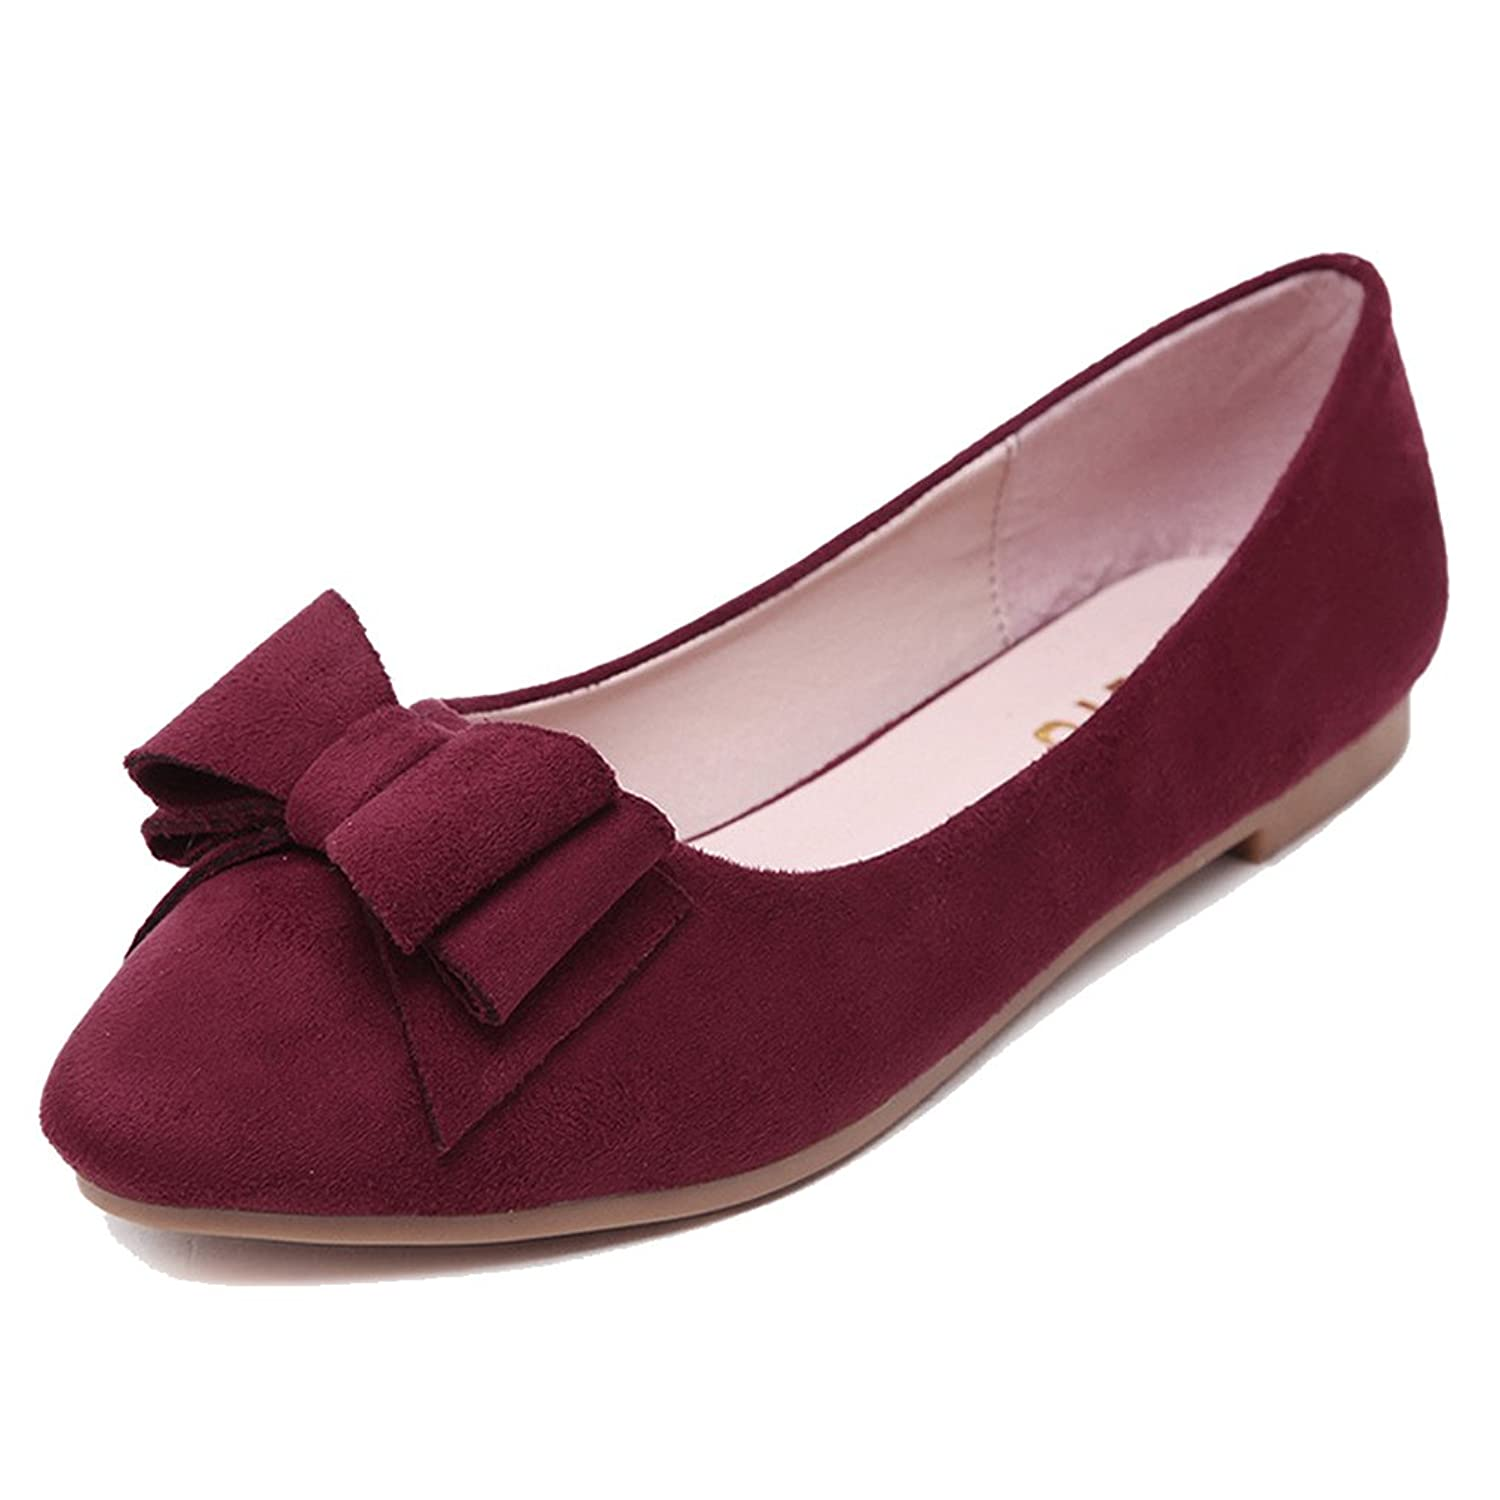 Fonshare Women's Sueded Loafers Pregnant Oxford Slip On Ankle Flats